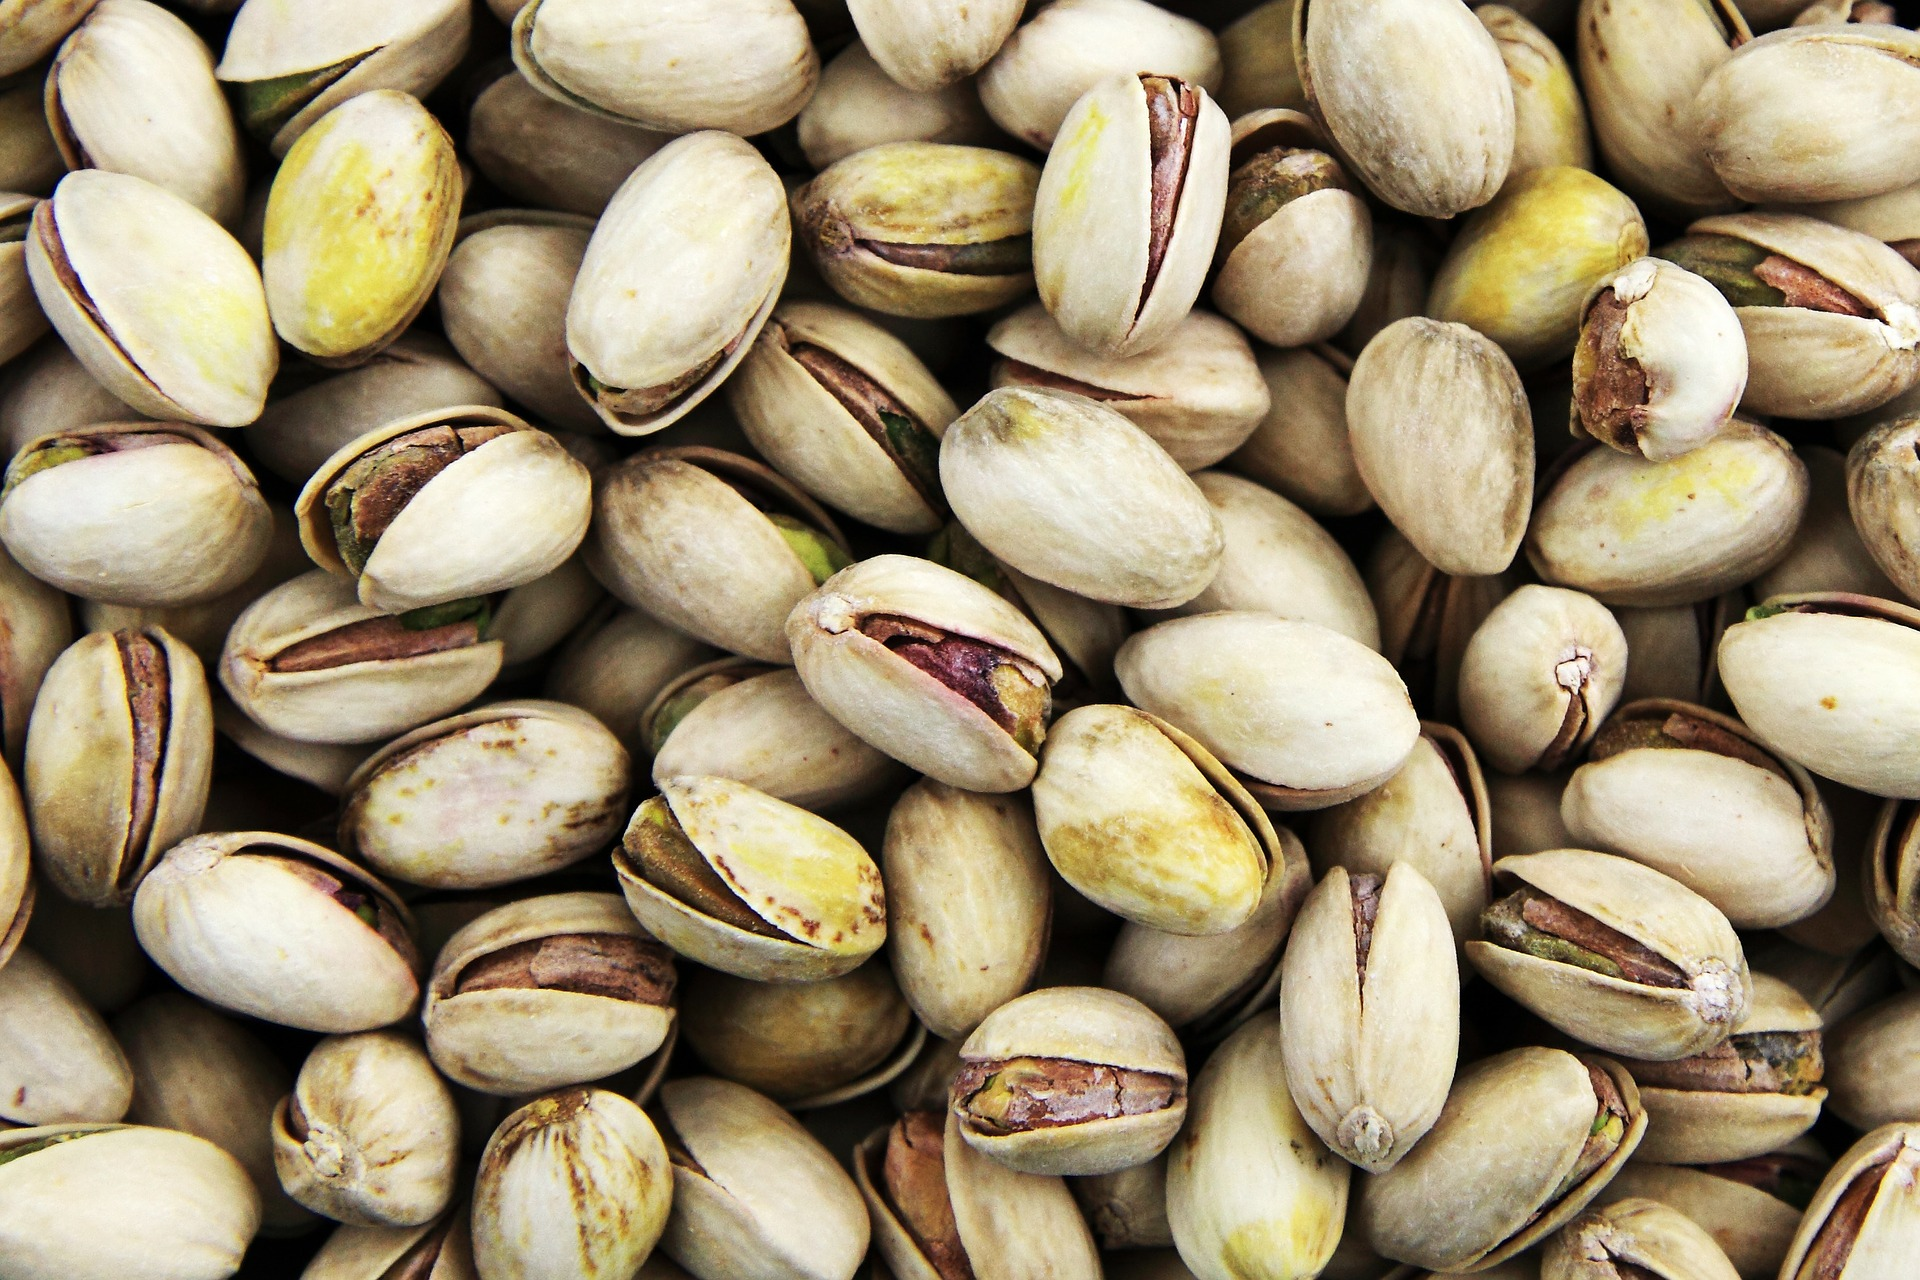 Pistachios are a healthy snack